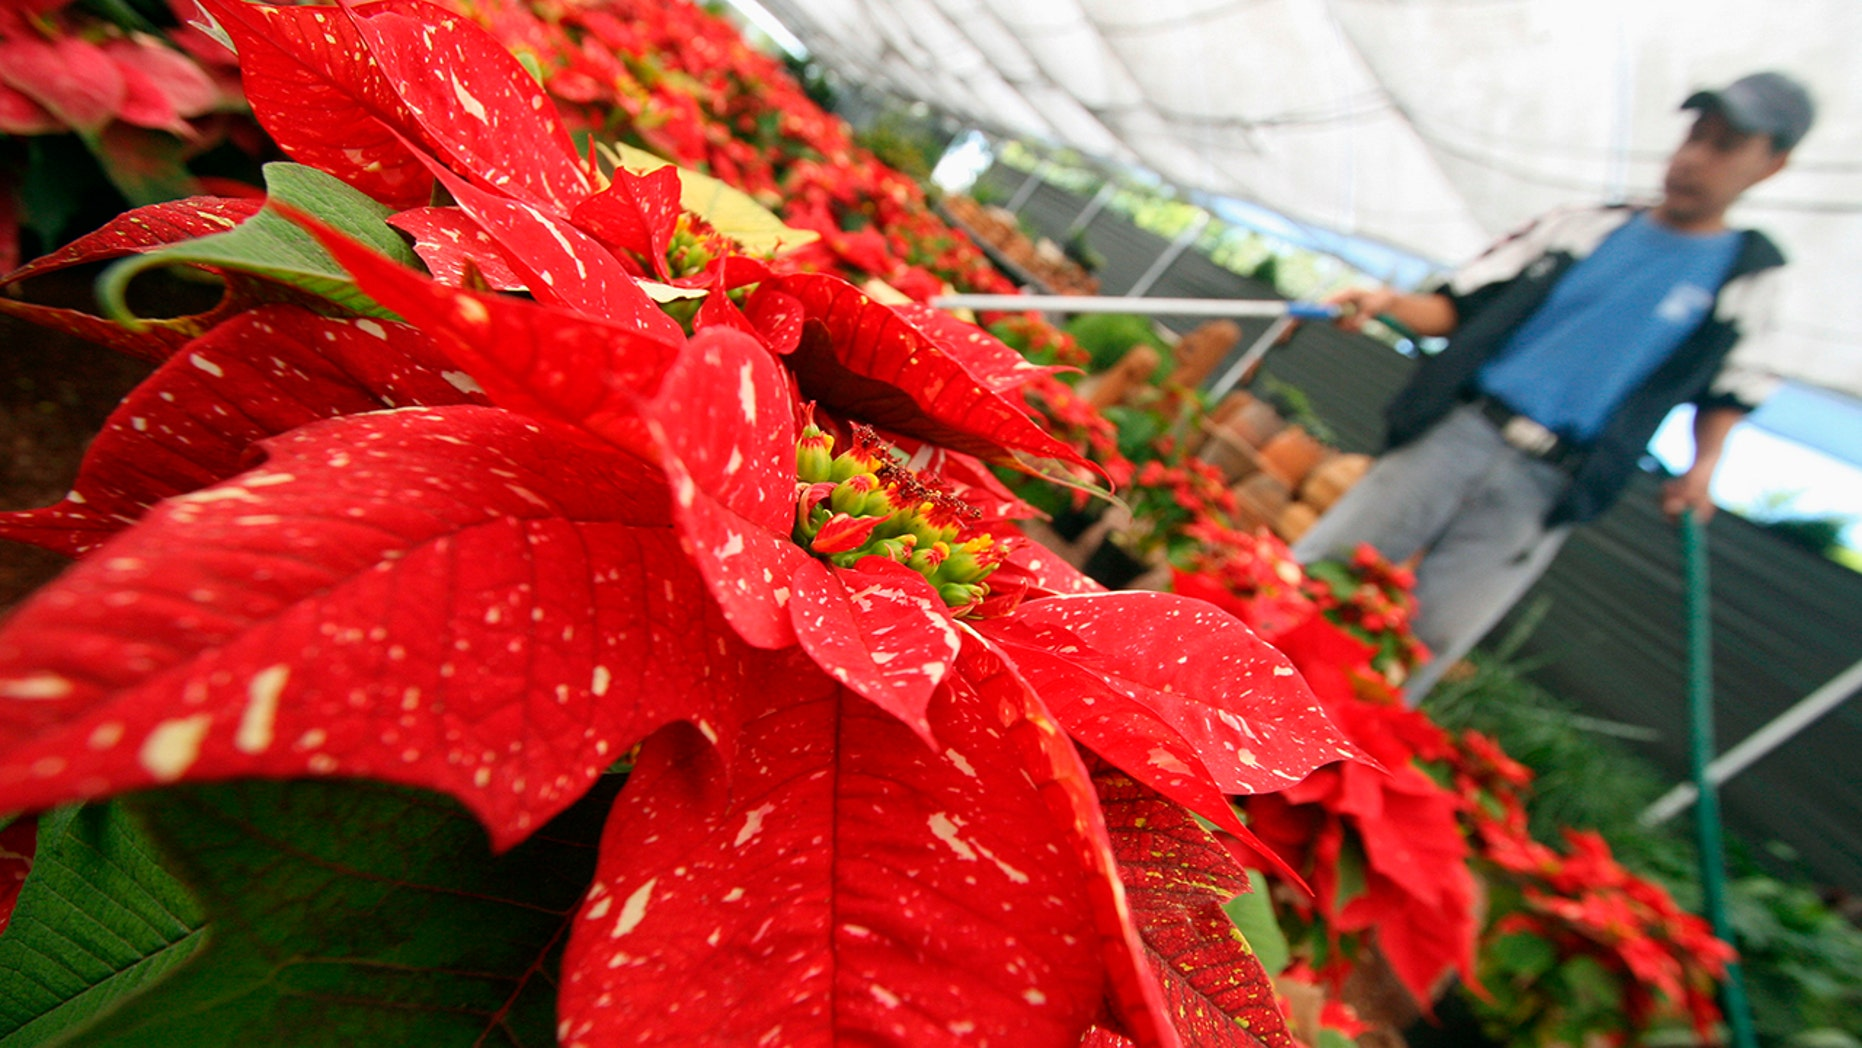 A worker waters poinsettias in a greenhouse in Mexico, Dec. 22, 2006.